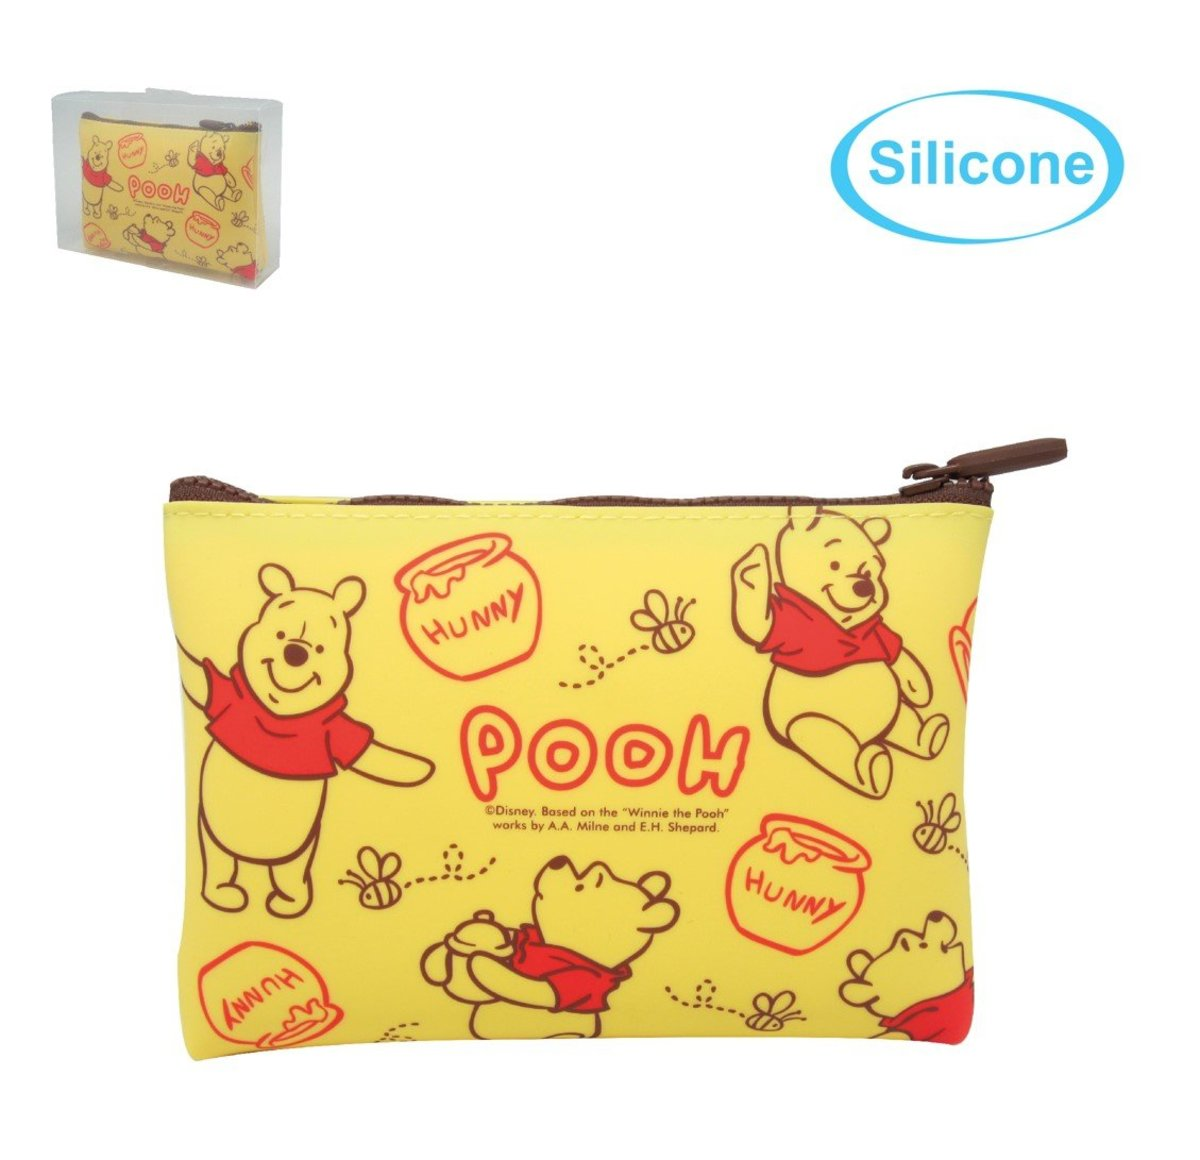 Silicone multipurpose bag(Licensed by Disney)